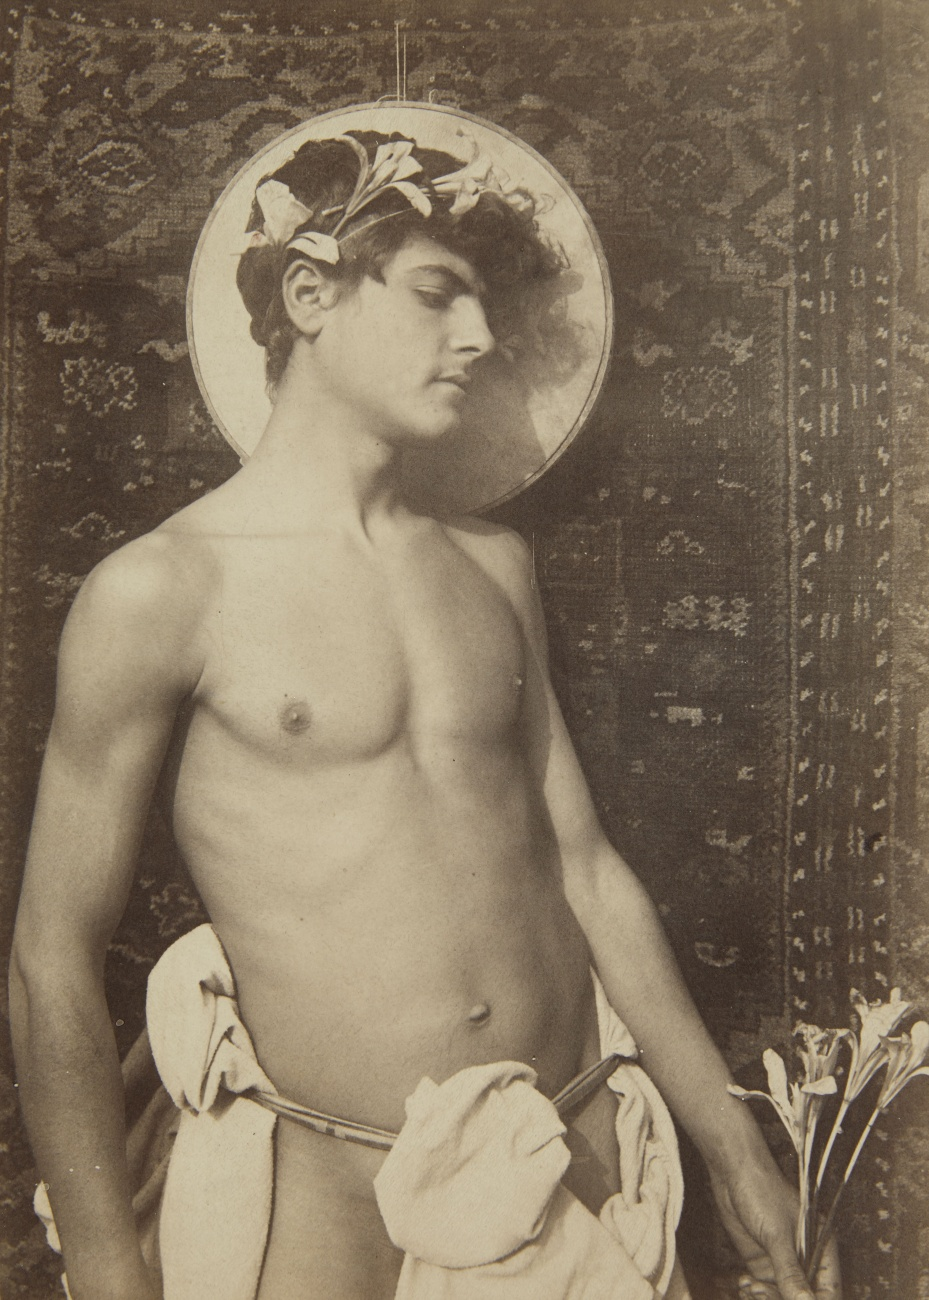 Vintage nude men apologise, but